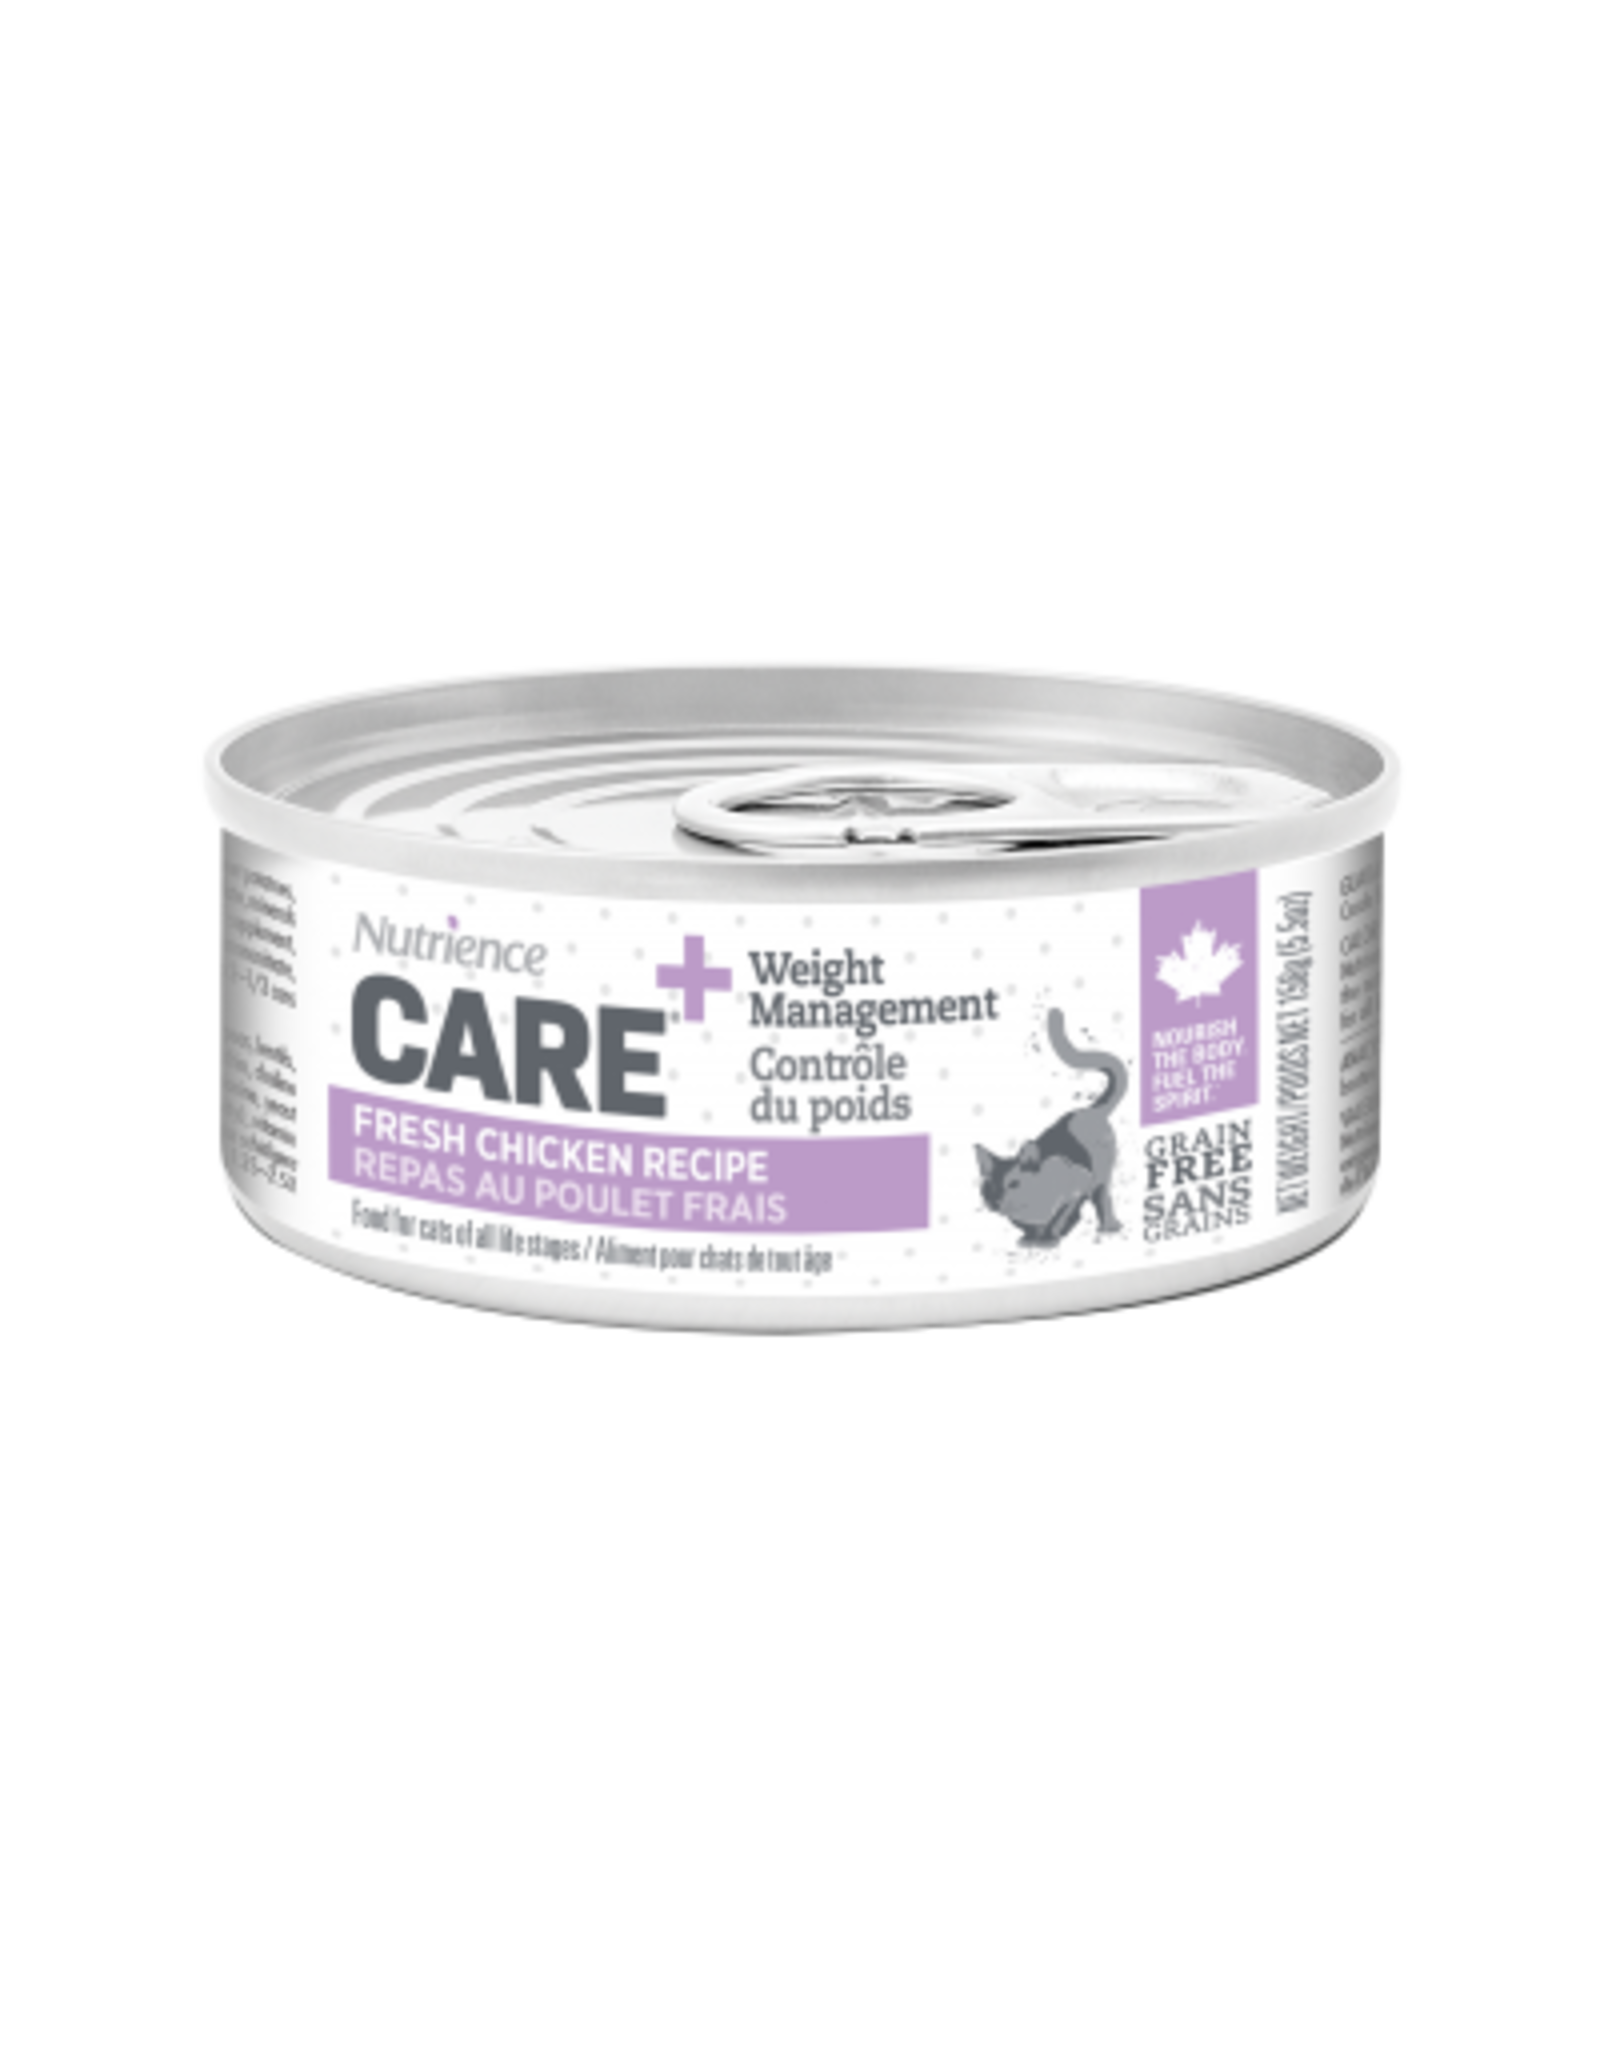 Nutrience Nutrience Care Weight Control 156g